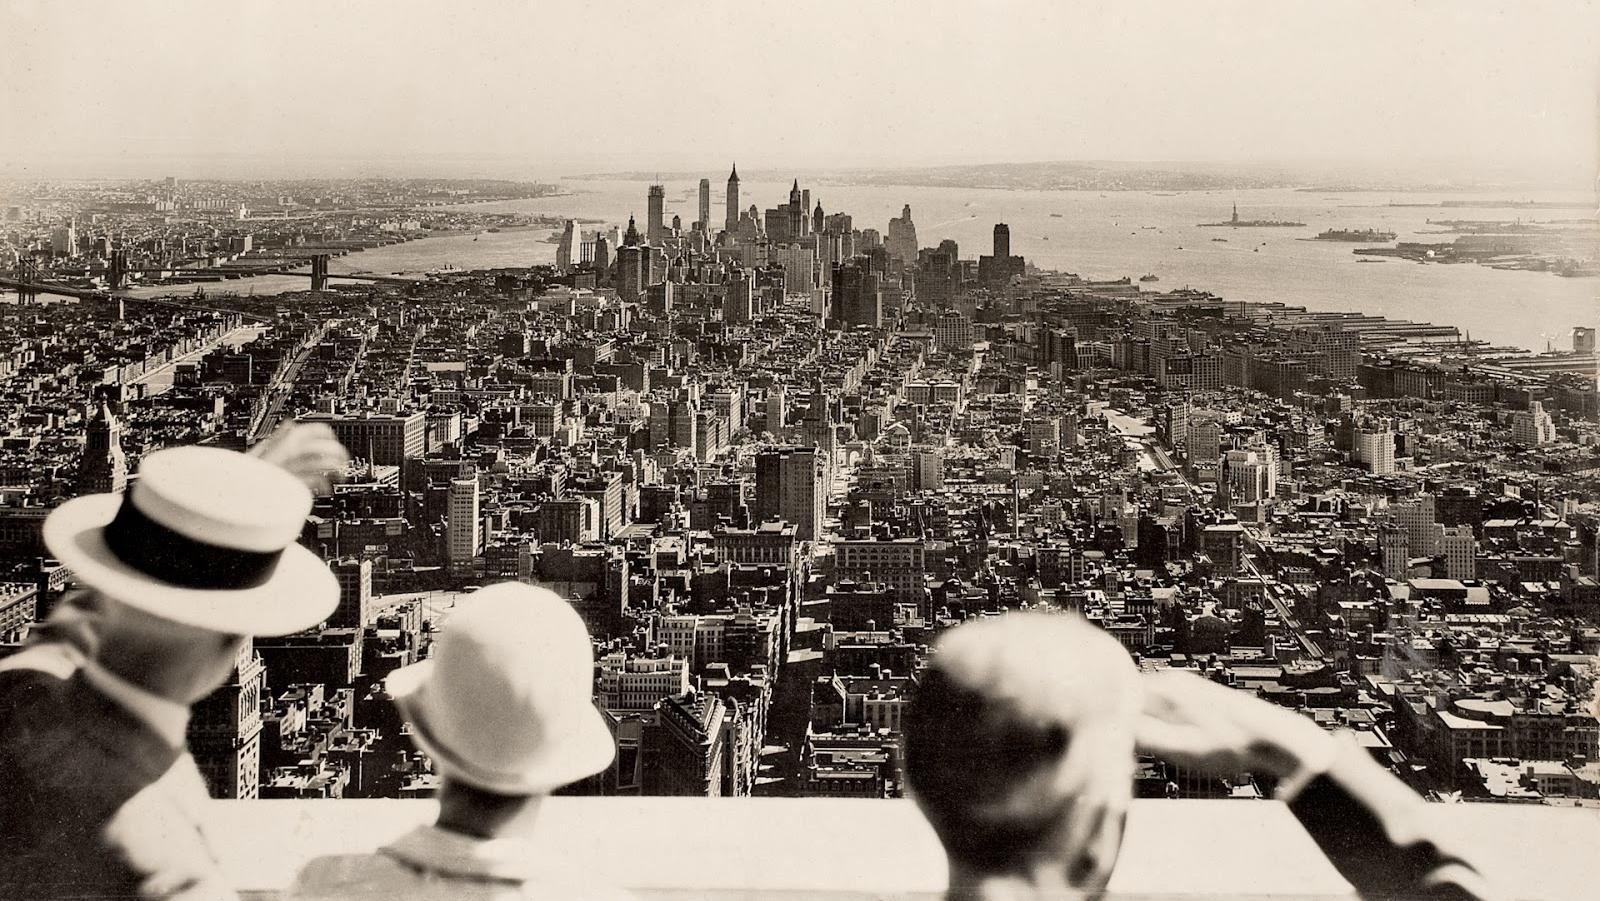 View from the top on the opening day of the Empire State Building, 1931 http://t.co/7P8d3ZtpbK